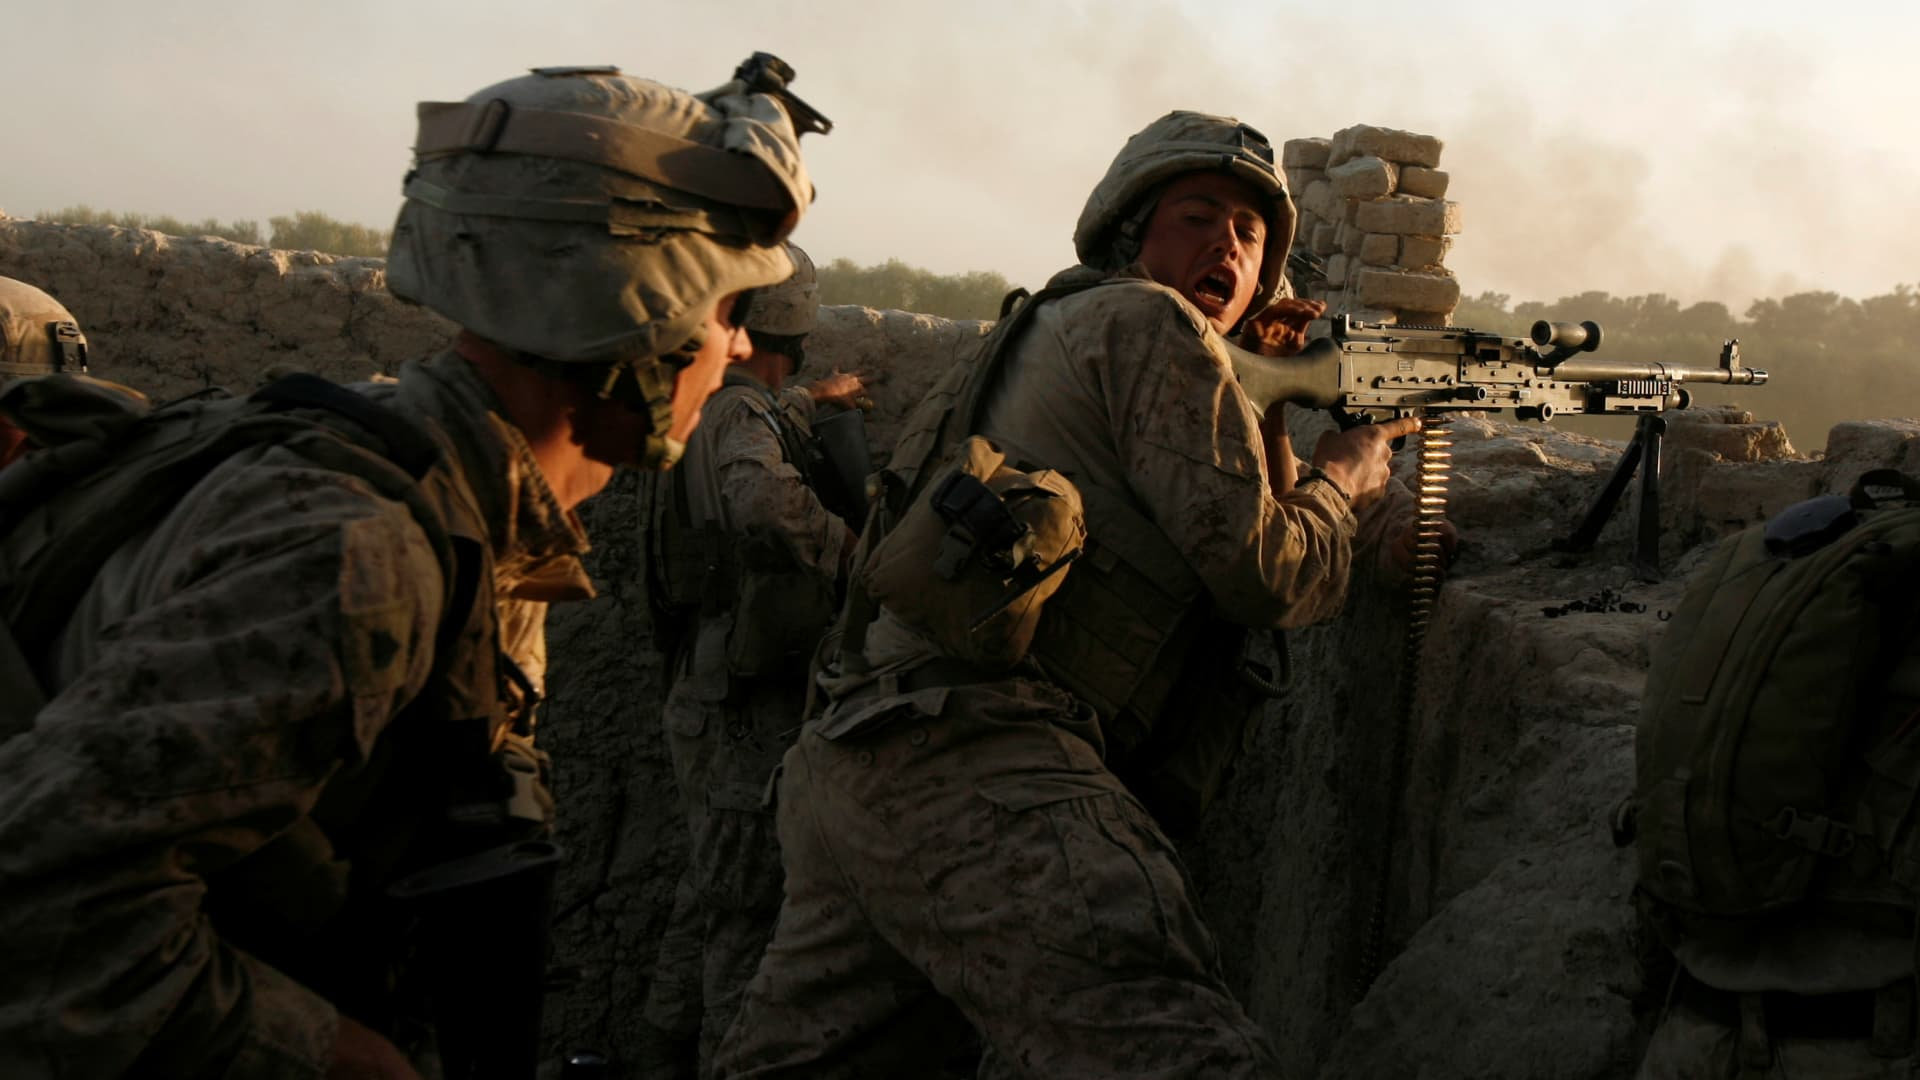 U.S. Marines fire during a Taliban ambush as they carry out an operation to clear an area in Helmand province, Afghanistan, October 9, 2009.